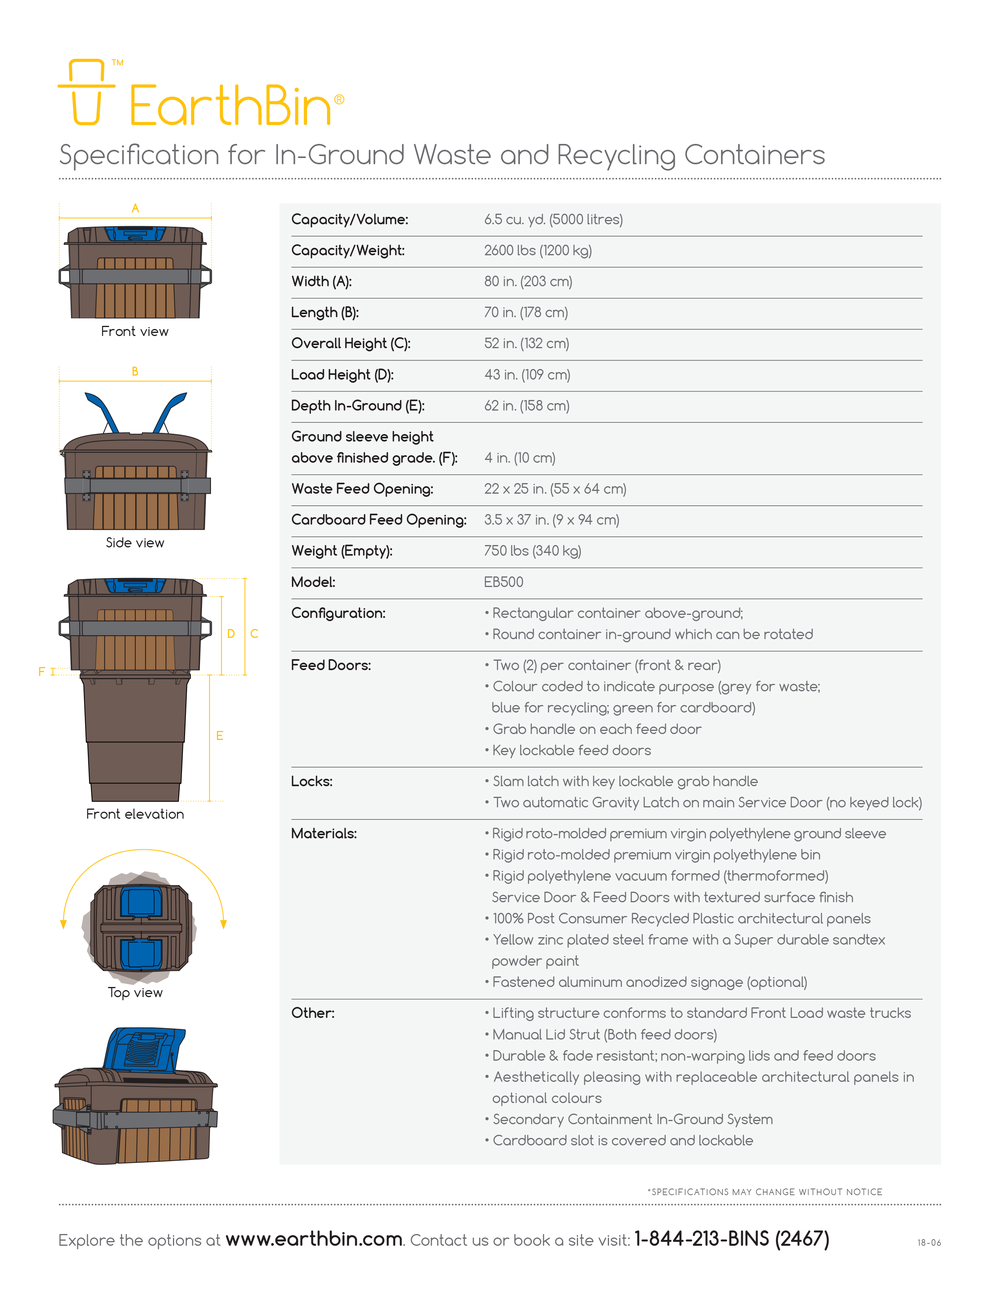 See   Earthbin® technical specifications